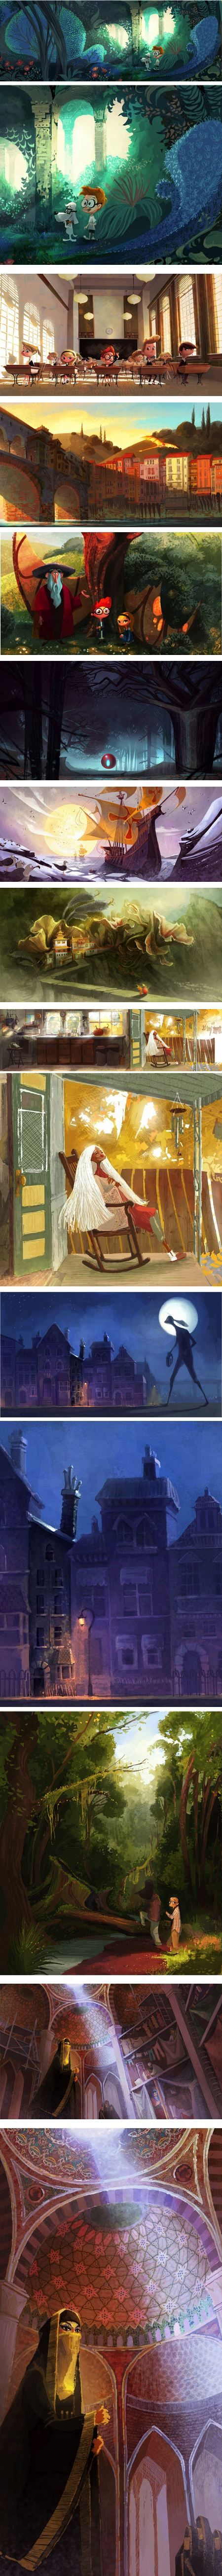 Priscilla Wong, ETELOIS, Mr. Peabody and Sherman concept art and others